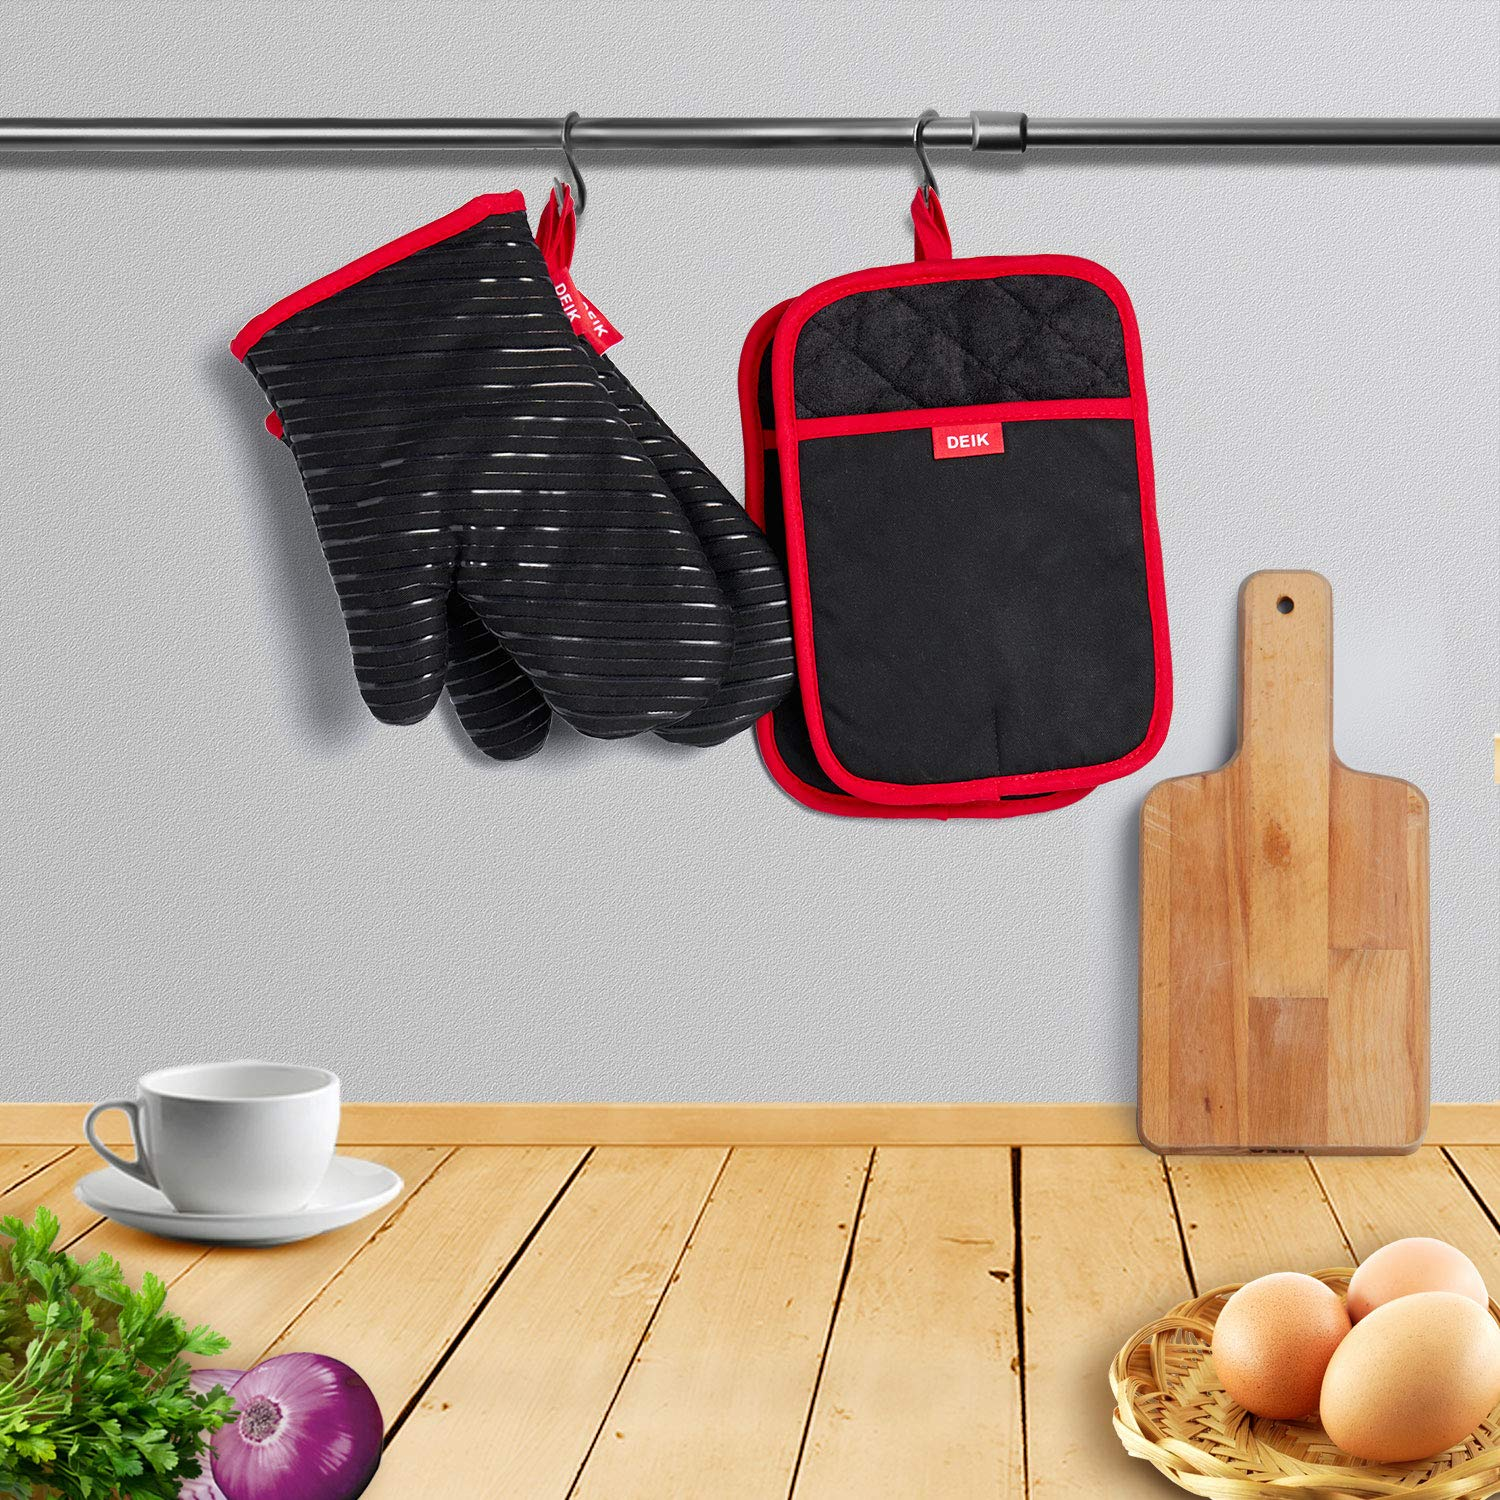 Oven Mitts and Potholders  DEIK 4-Piece Sets for Kitchen Counter Safe Mats and Advanced Heat Resistant Oven Mitt, Non-Slip Textured Grip Pot Holders, Nano- technology by d (Image #6)